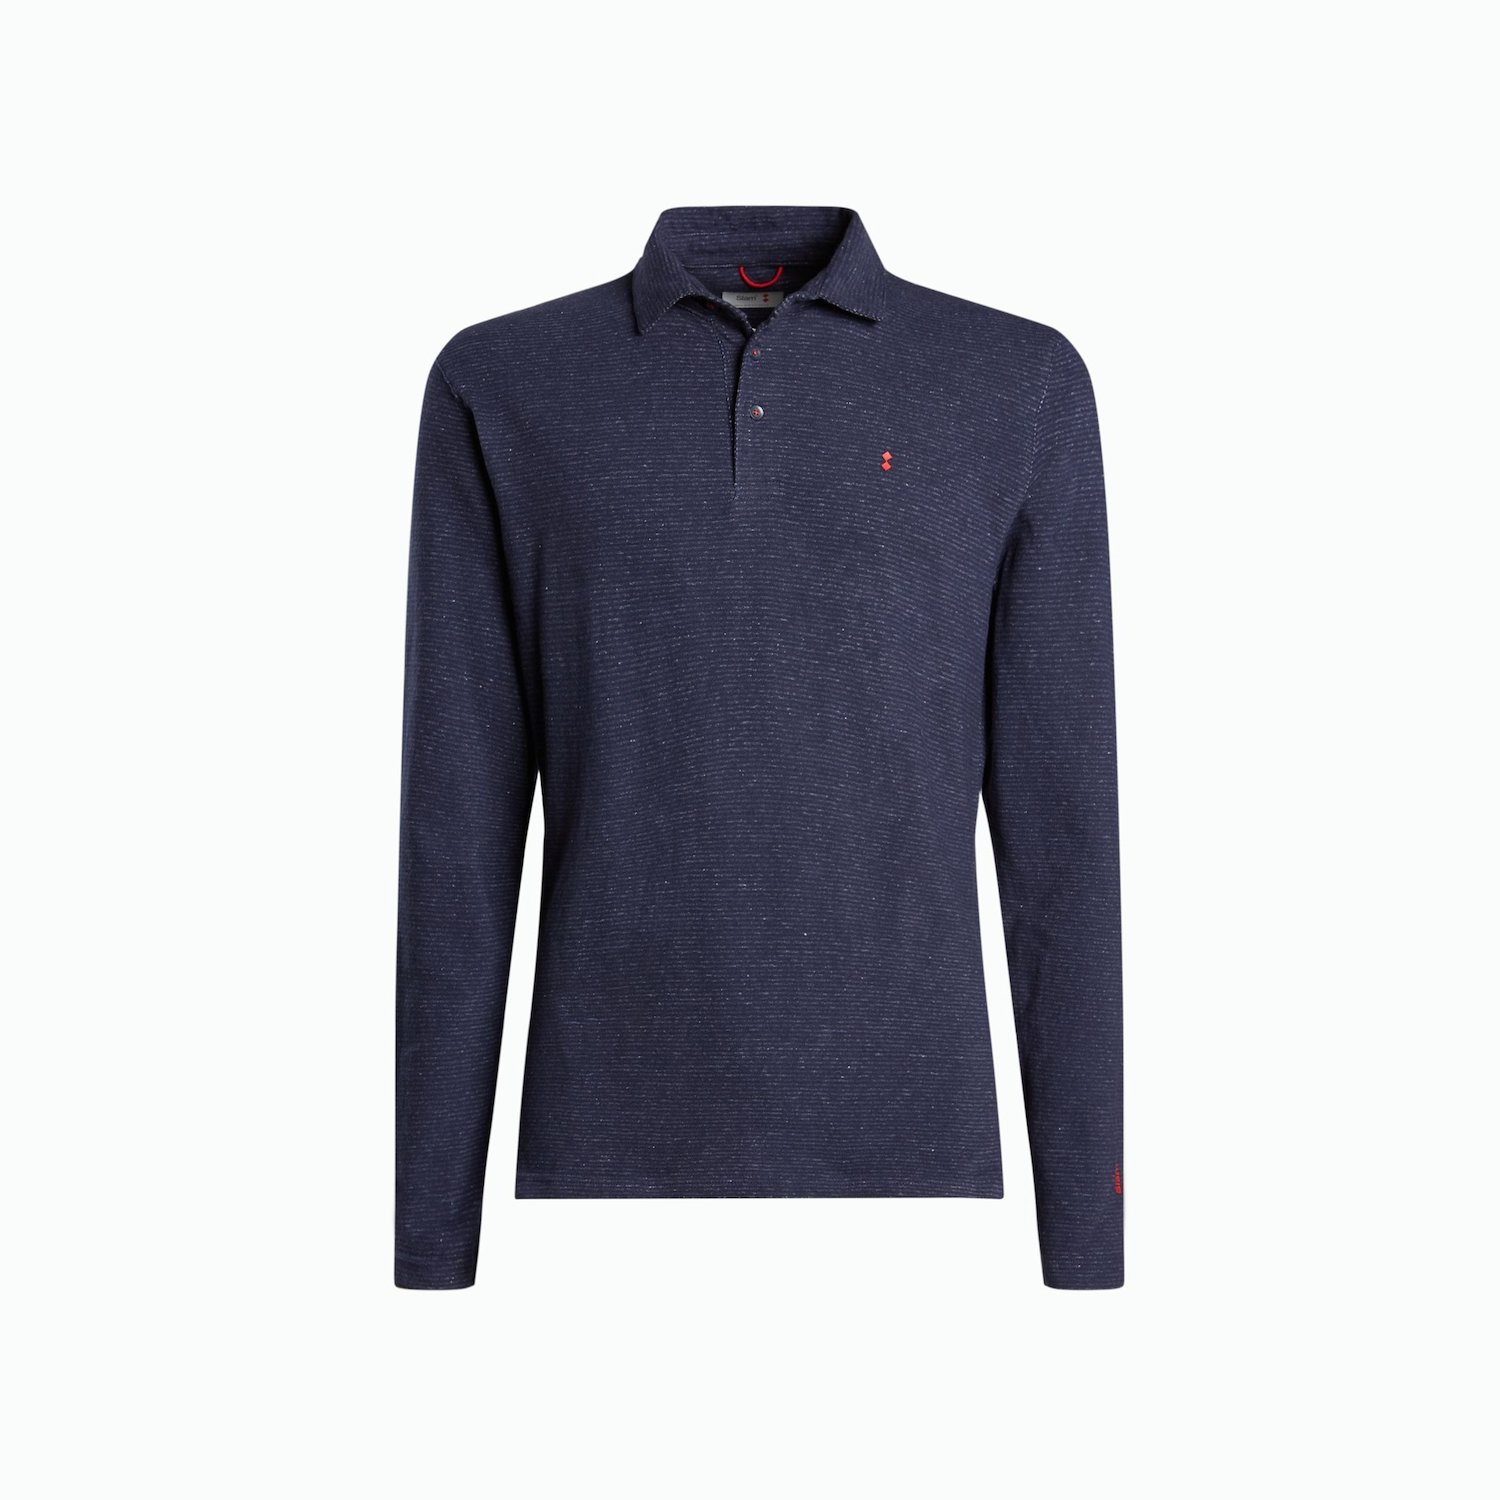 B164 polo shirt - Navy